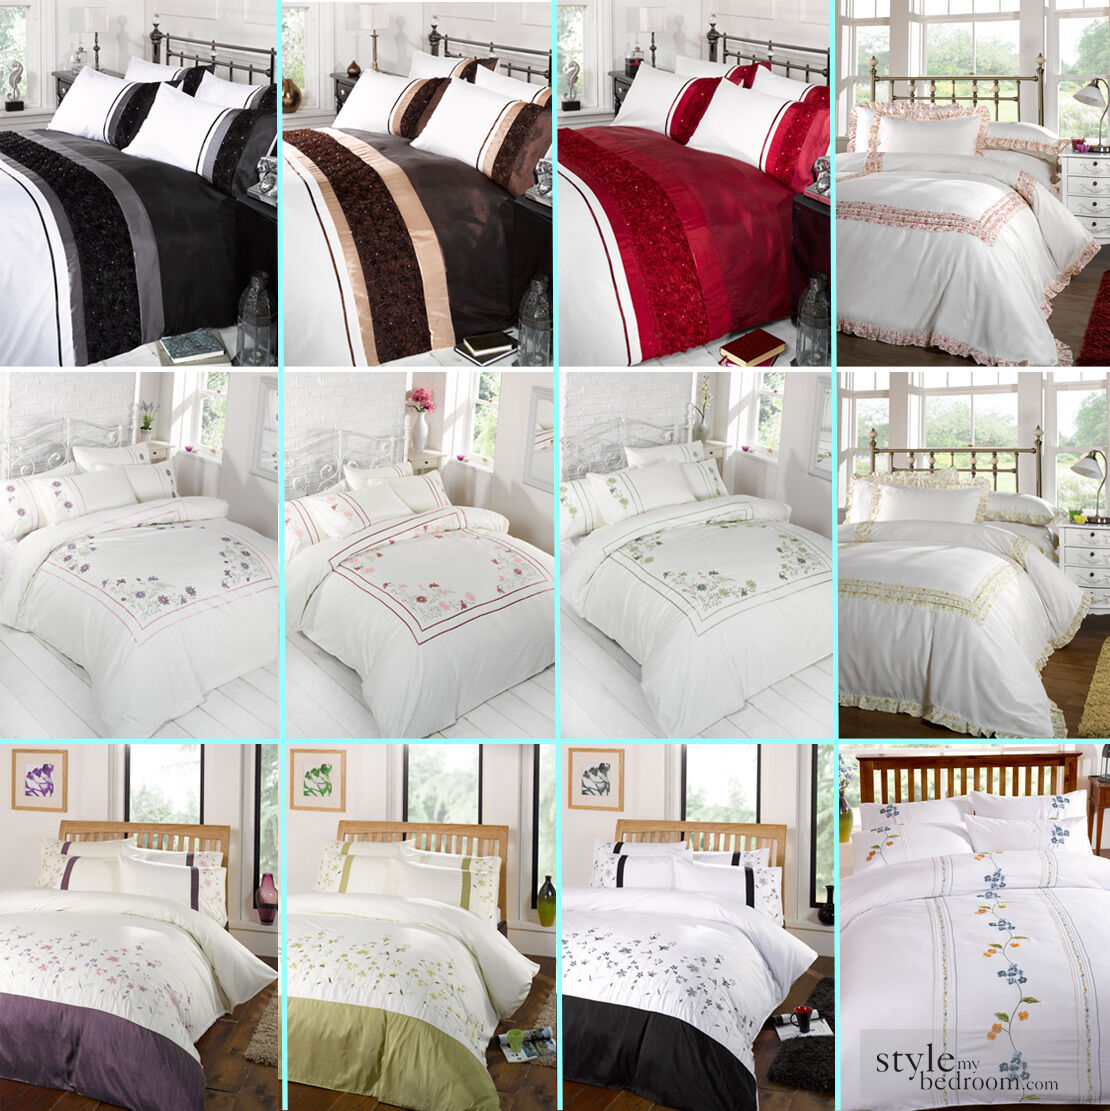 5 Piece Bed in a Bag Bedding Duvet Quilt Cover Set, Double \u0026 King ...